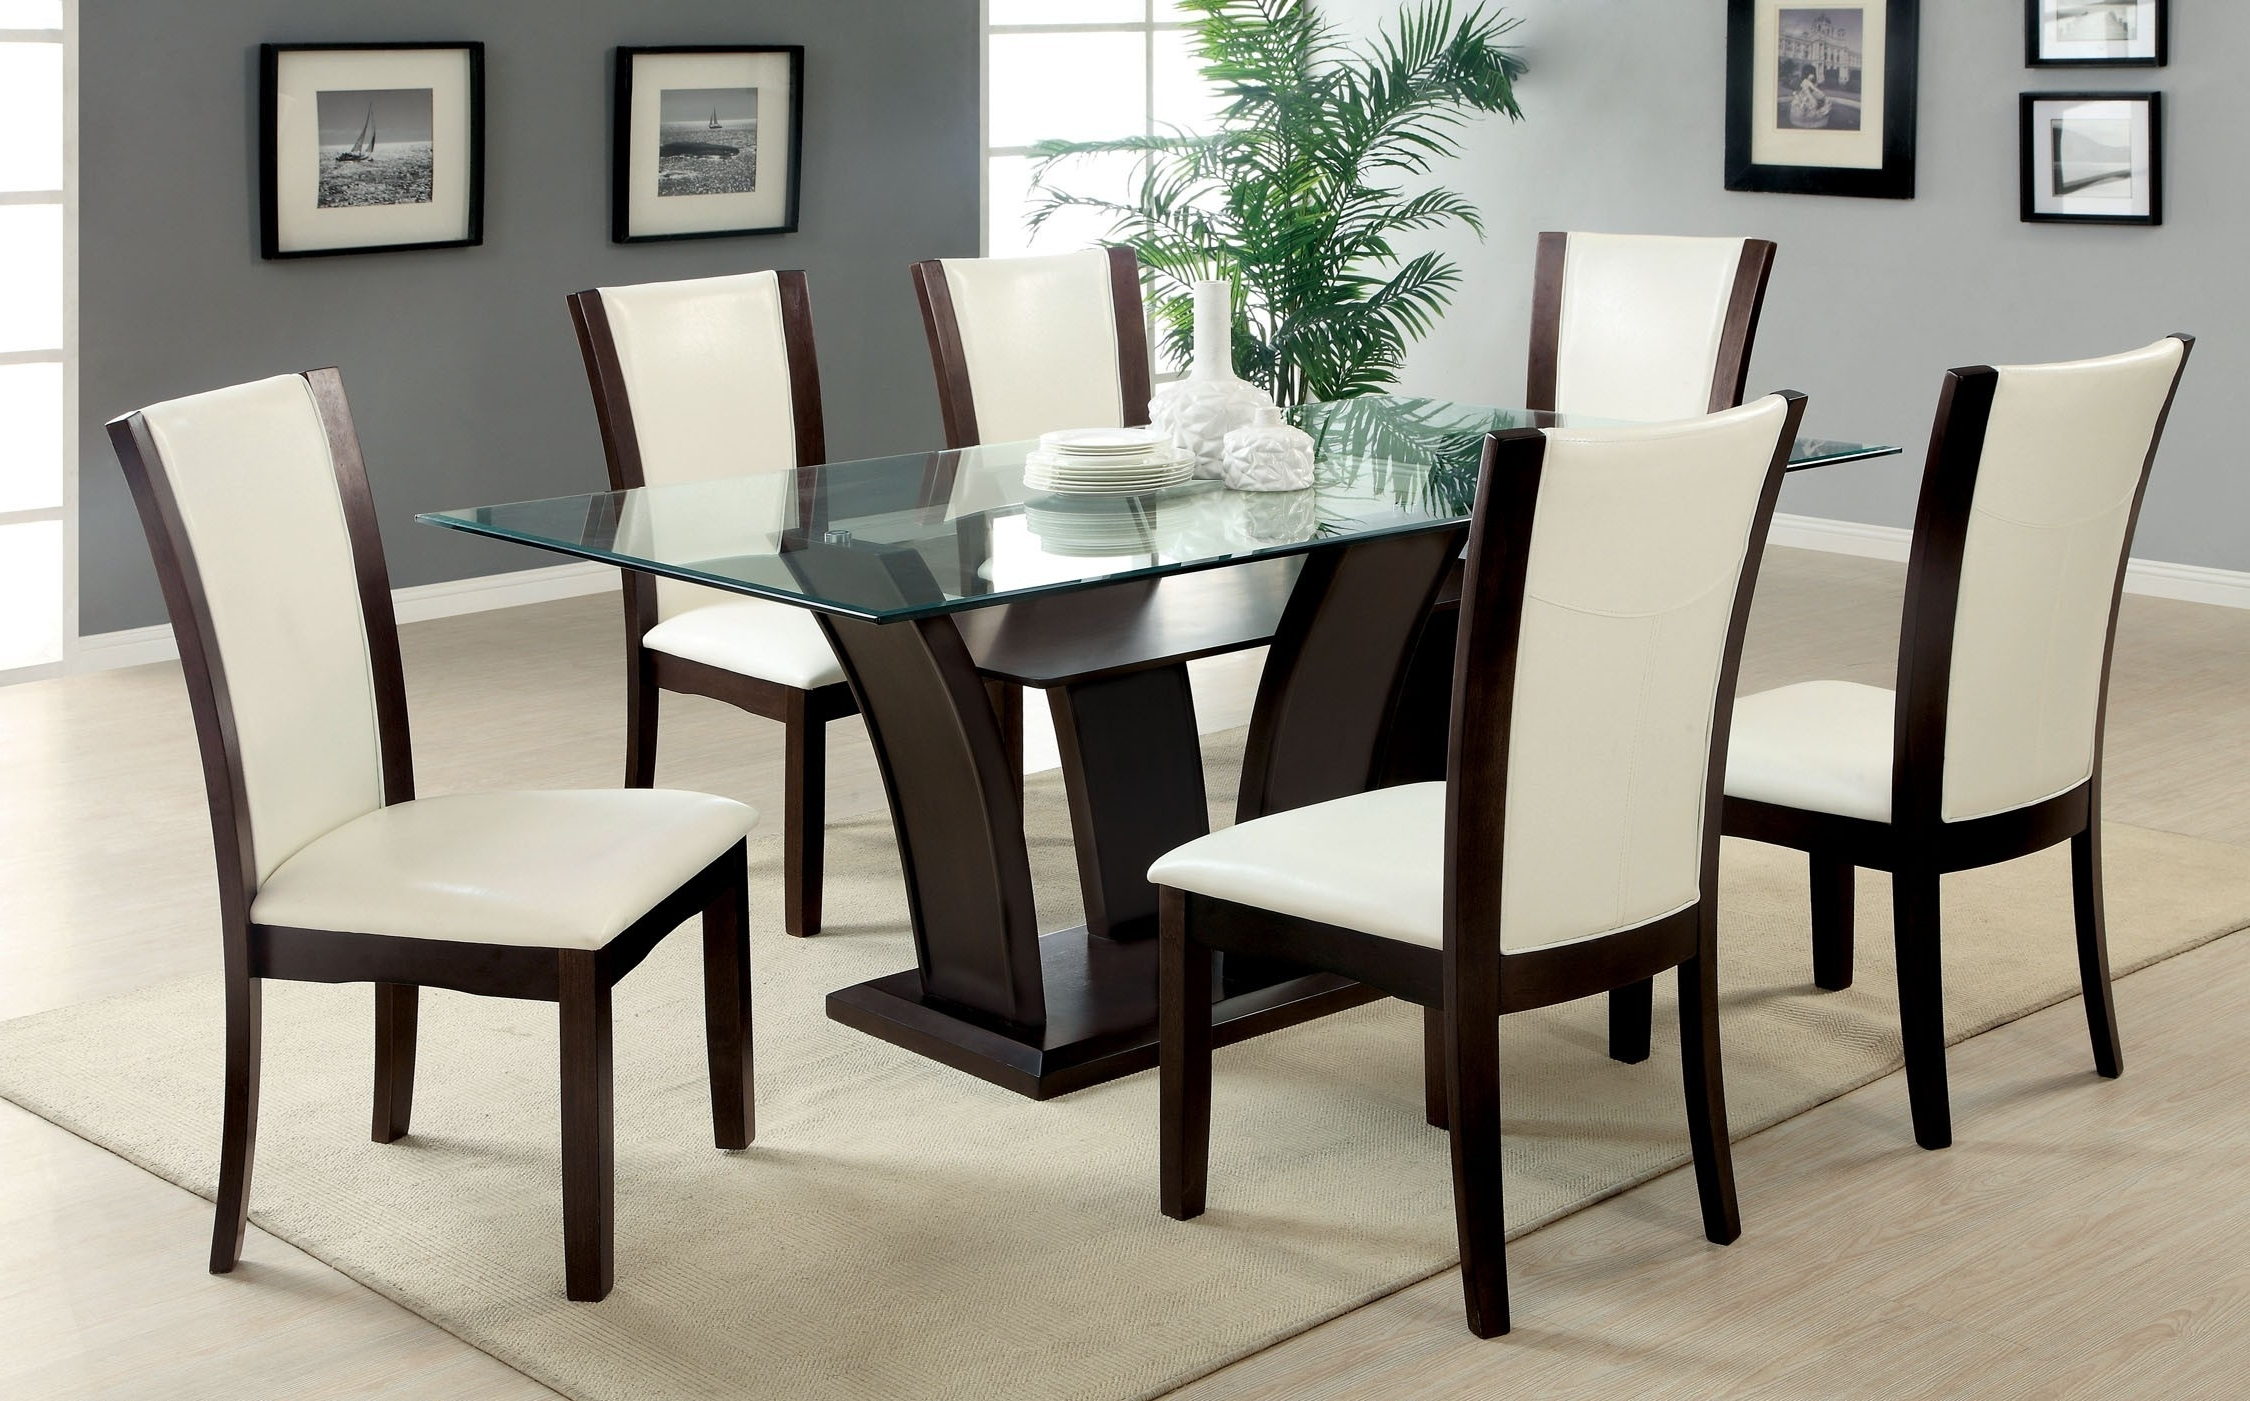 Preferred Glass Top Dining Table With 8 Chairs – Glass Decorating Ideas Regarding Dining Tables And 8 Chairs Sets (View 14 of 25)